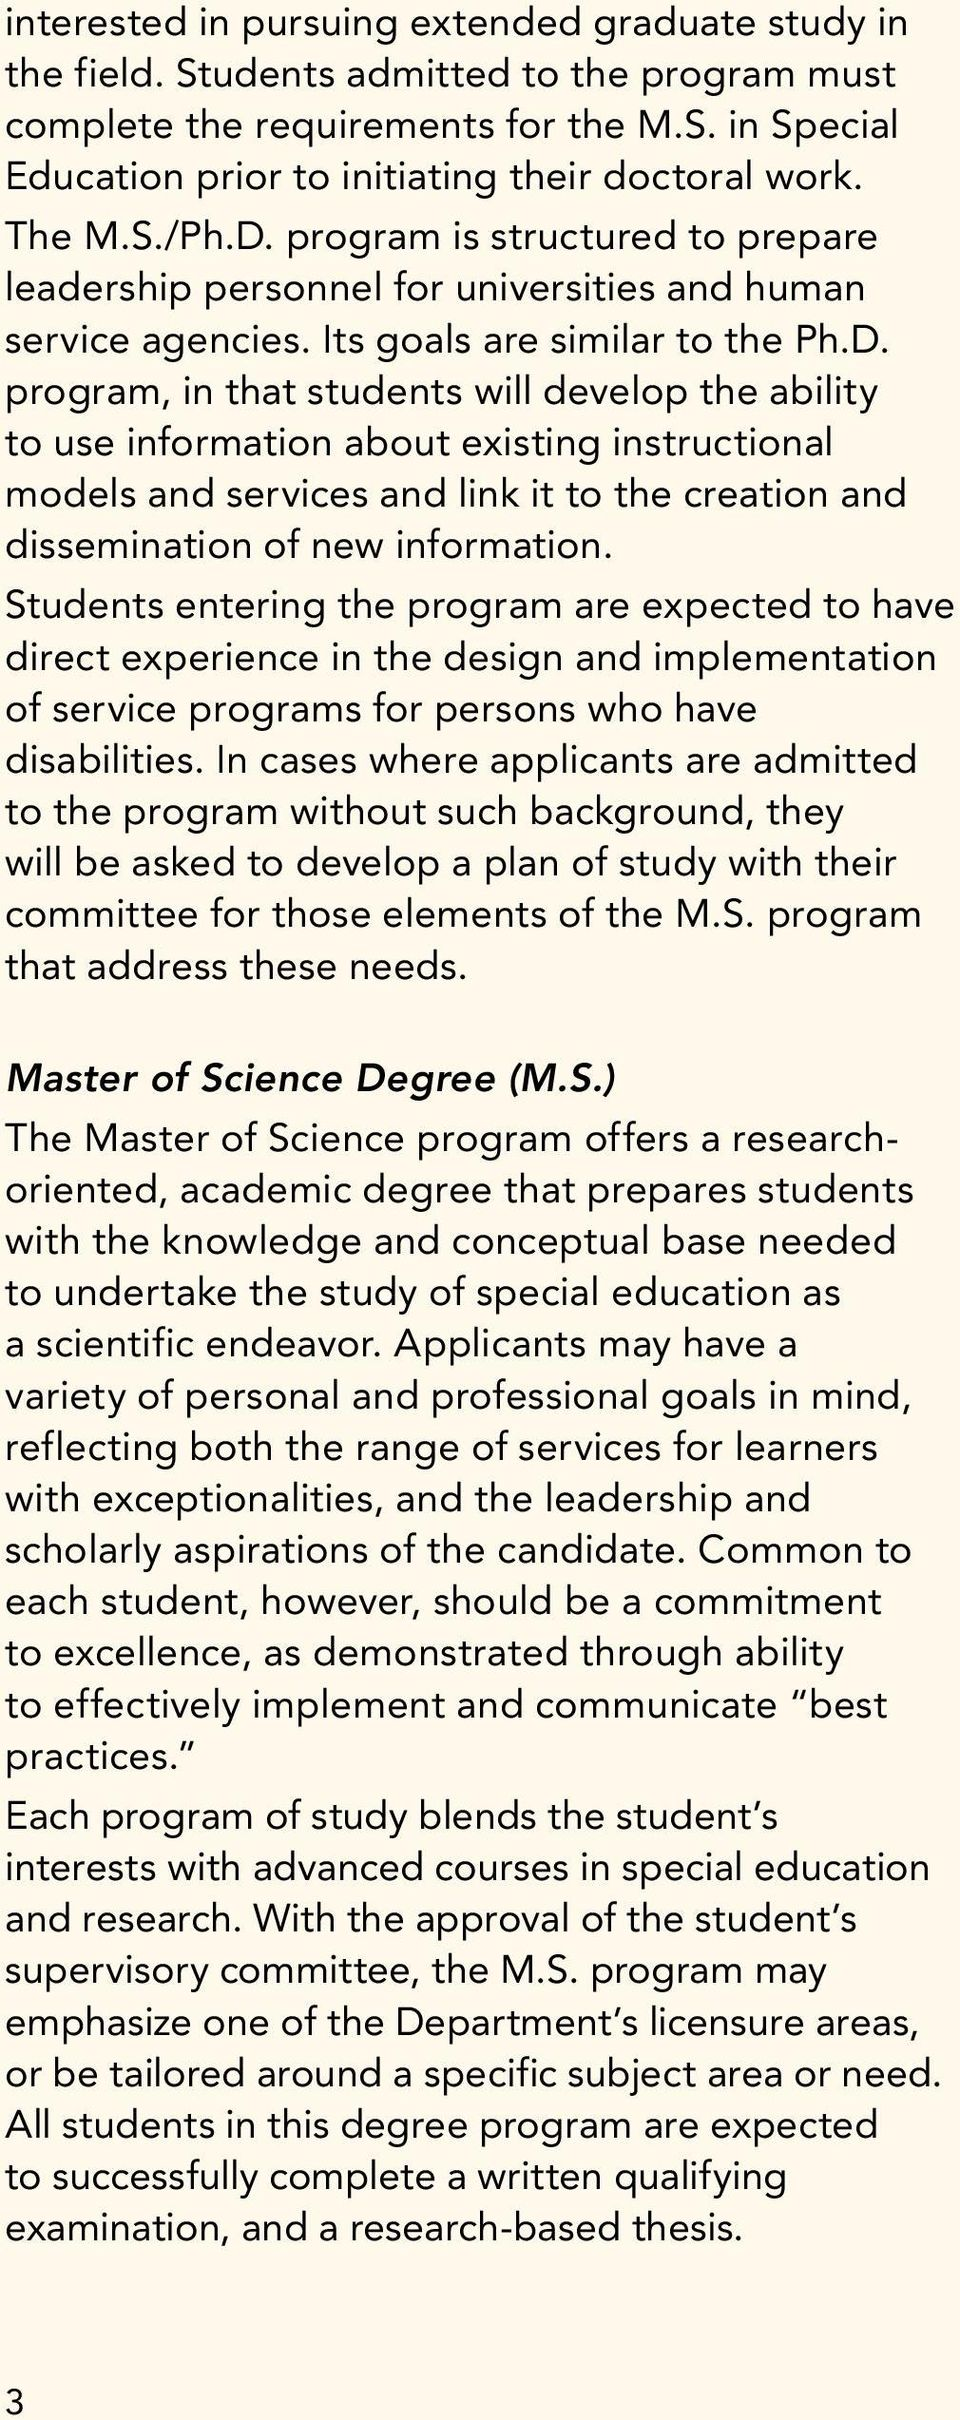 Students entering the program are expected to have direct experience in the design and implementation of service programs for persons who have disabilities.